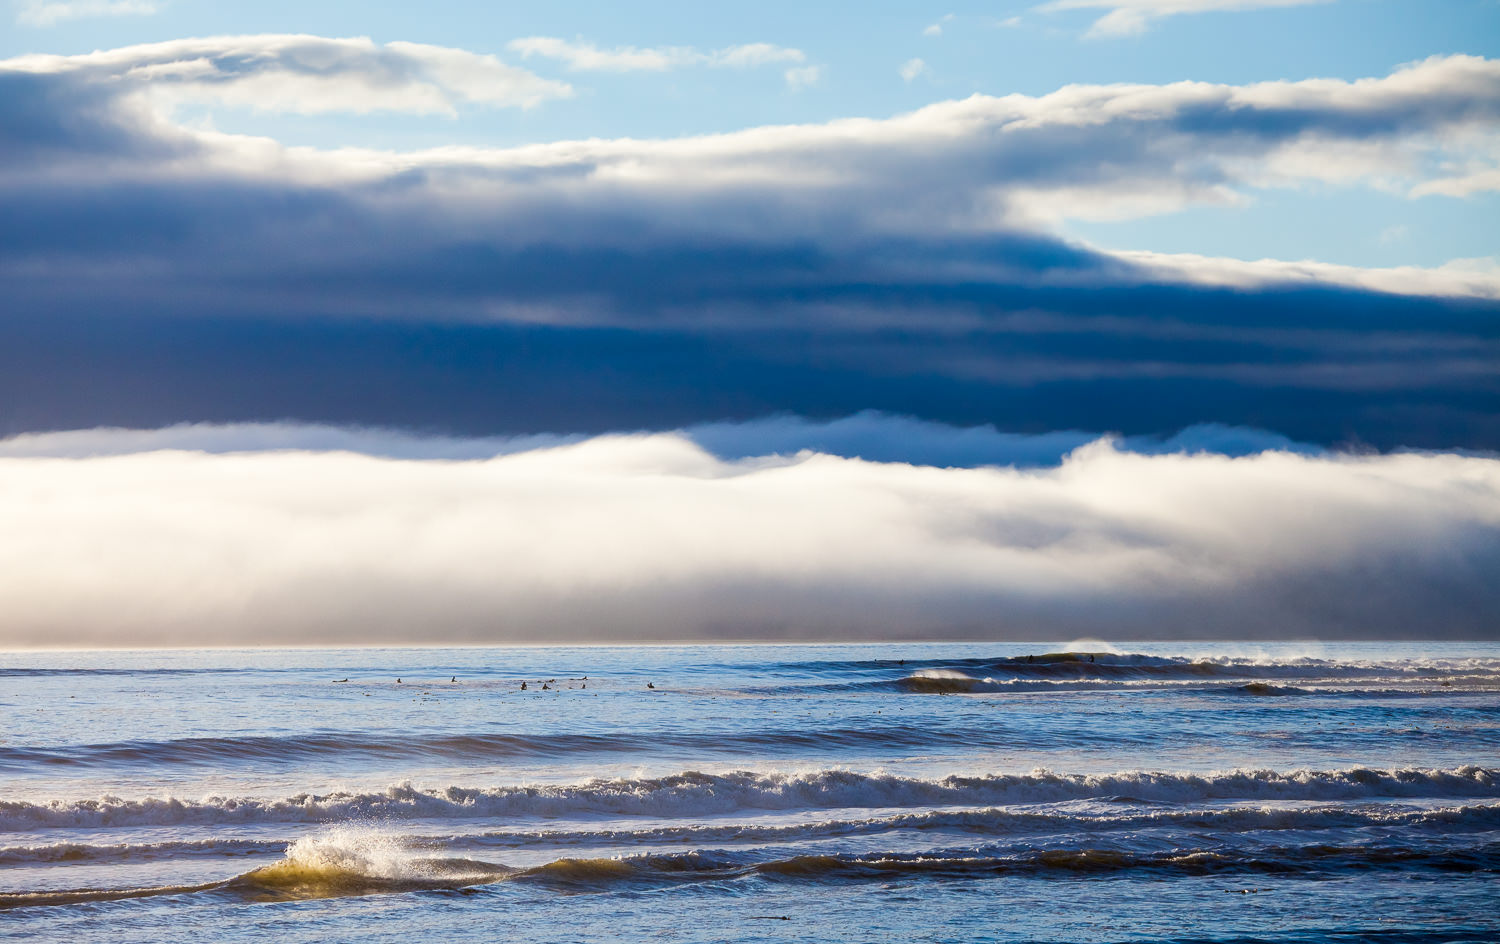 Waves wash across the ocean and the sky along the west coast of Vancouver Island. The patterns found in nature, from big to small, are something to marvel at.  Canon 5D MK2   70-200 f/4L IS   1/2000 sec   f/8   ISO 400.